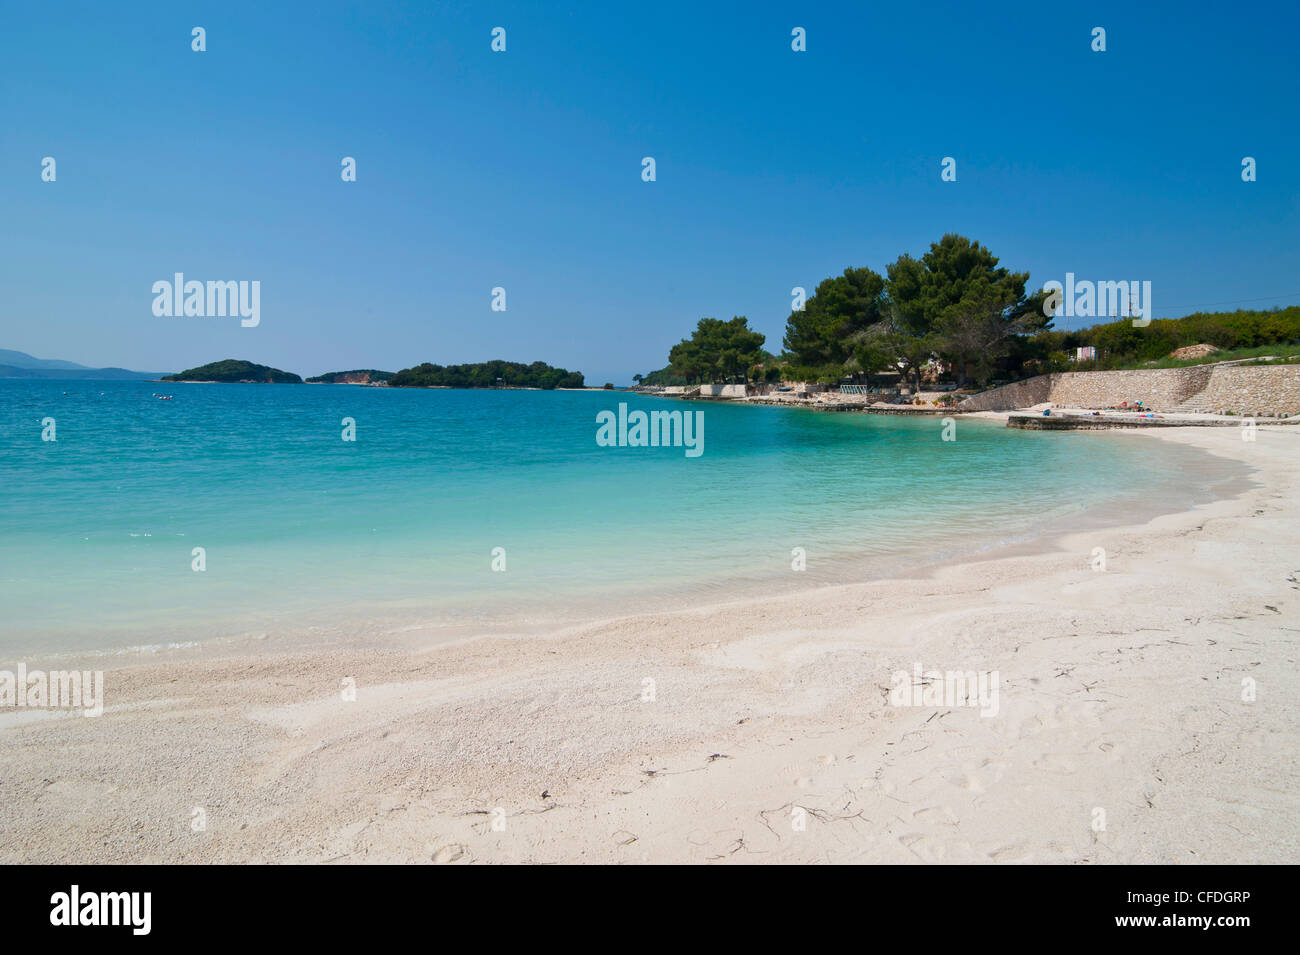 White sand beach and turquoise water at Ksamil, Albania, Europe - Stock Image